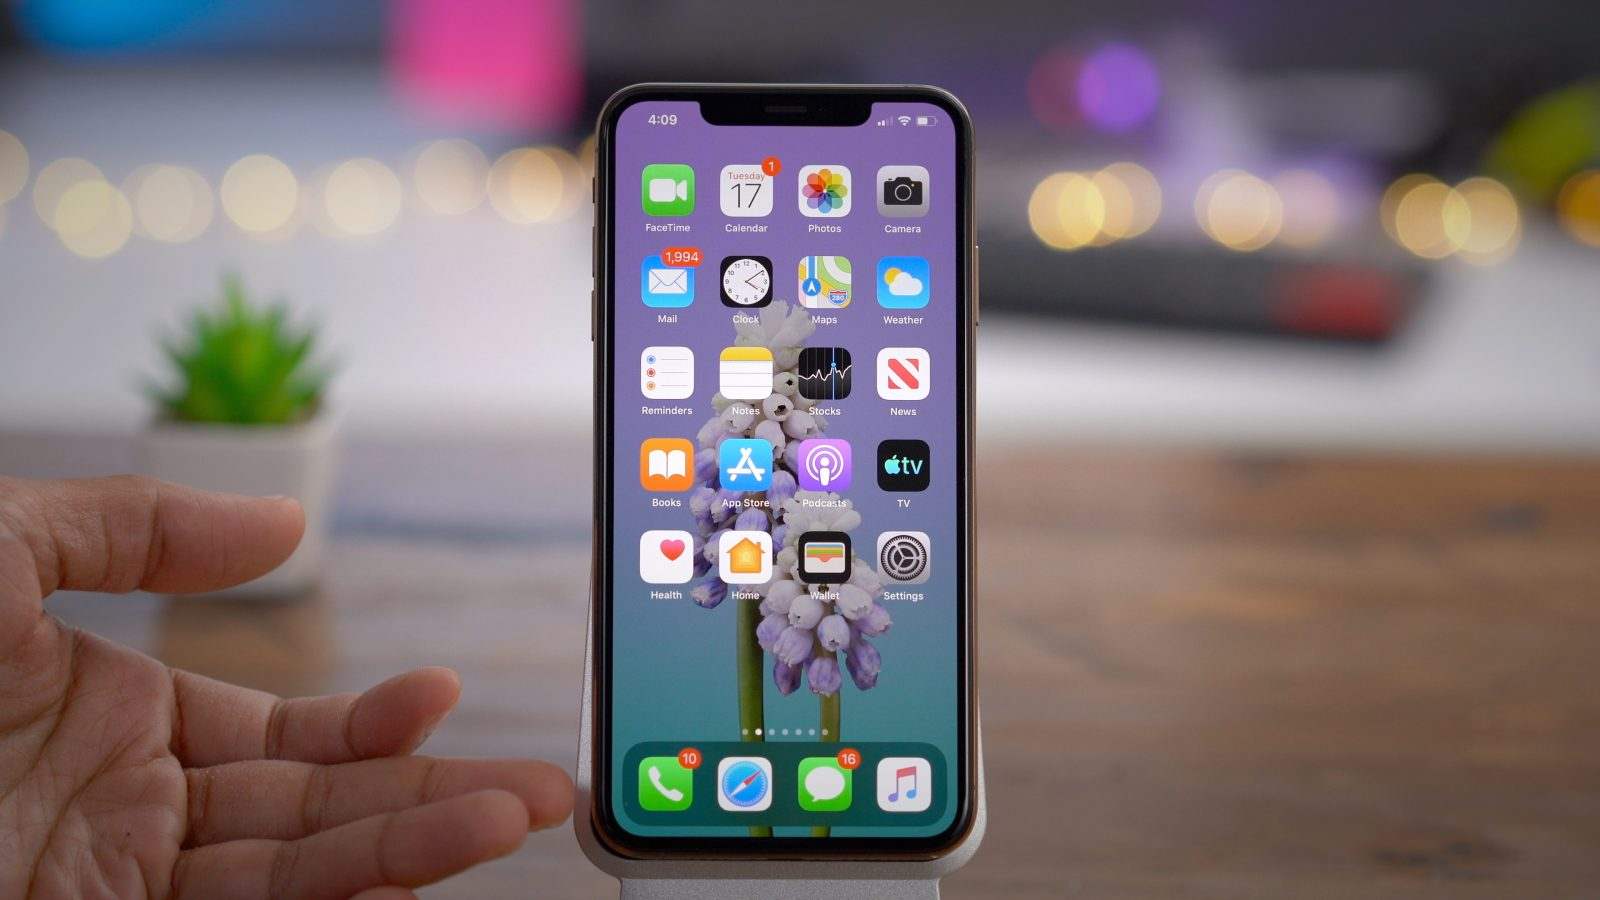 iOS 1.1.1 is the latest software update from Apple to fix iPhone